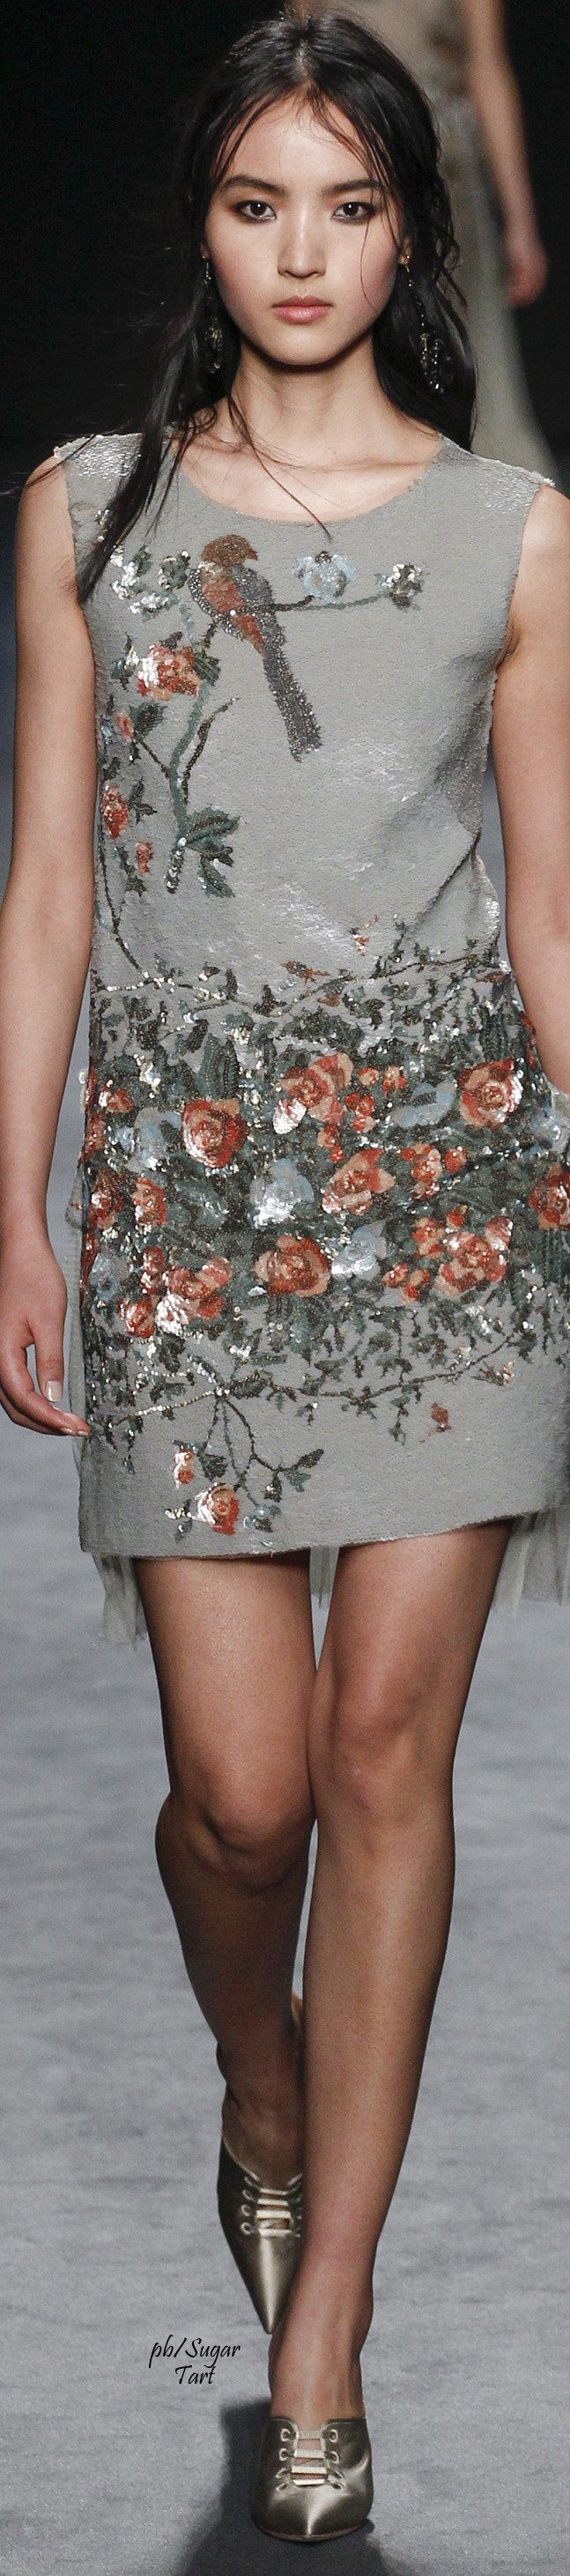 Alberta Ferretti Fall 2016 RTW women fashion outfit clothing style apparel @roressclothes closet ideas